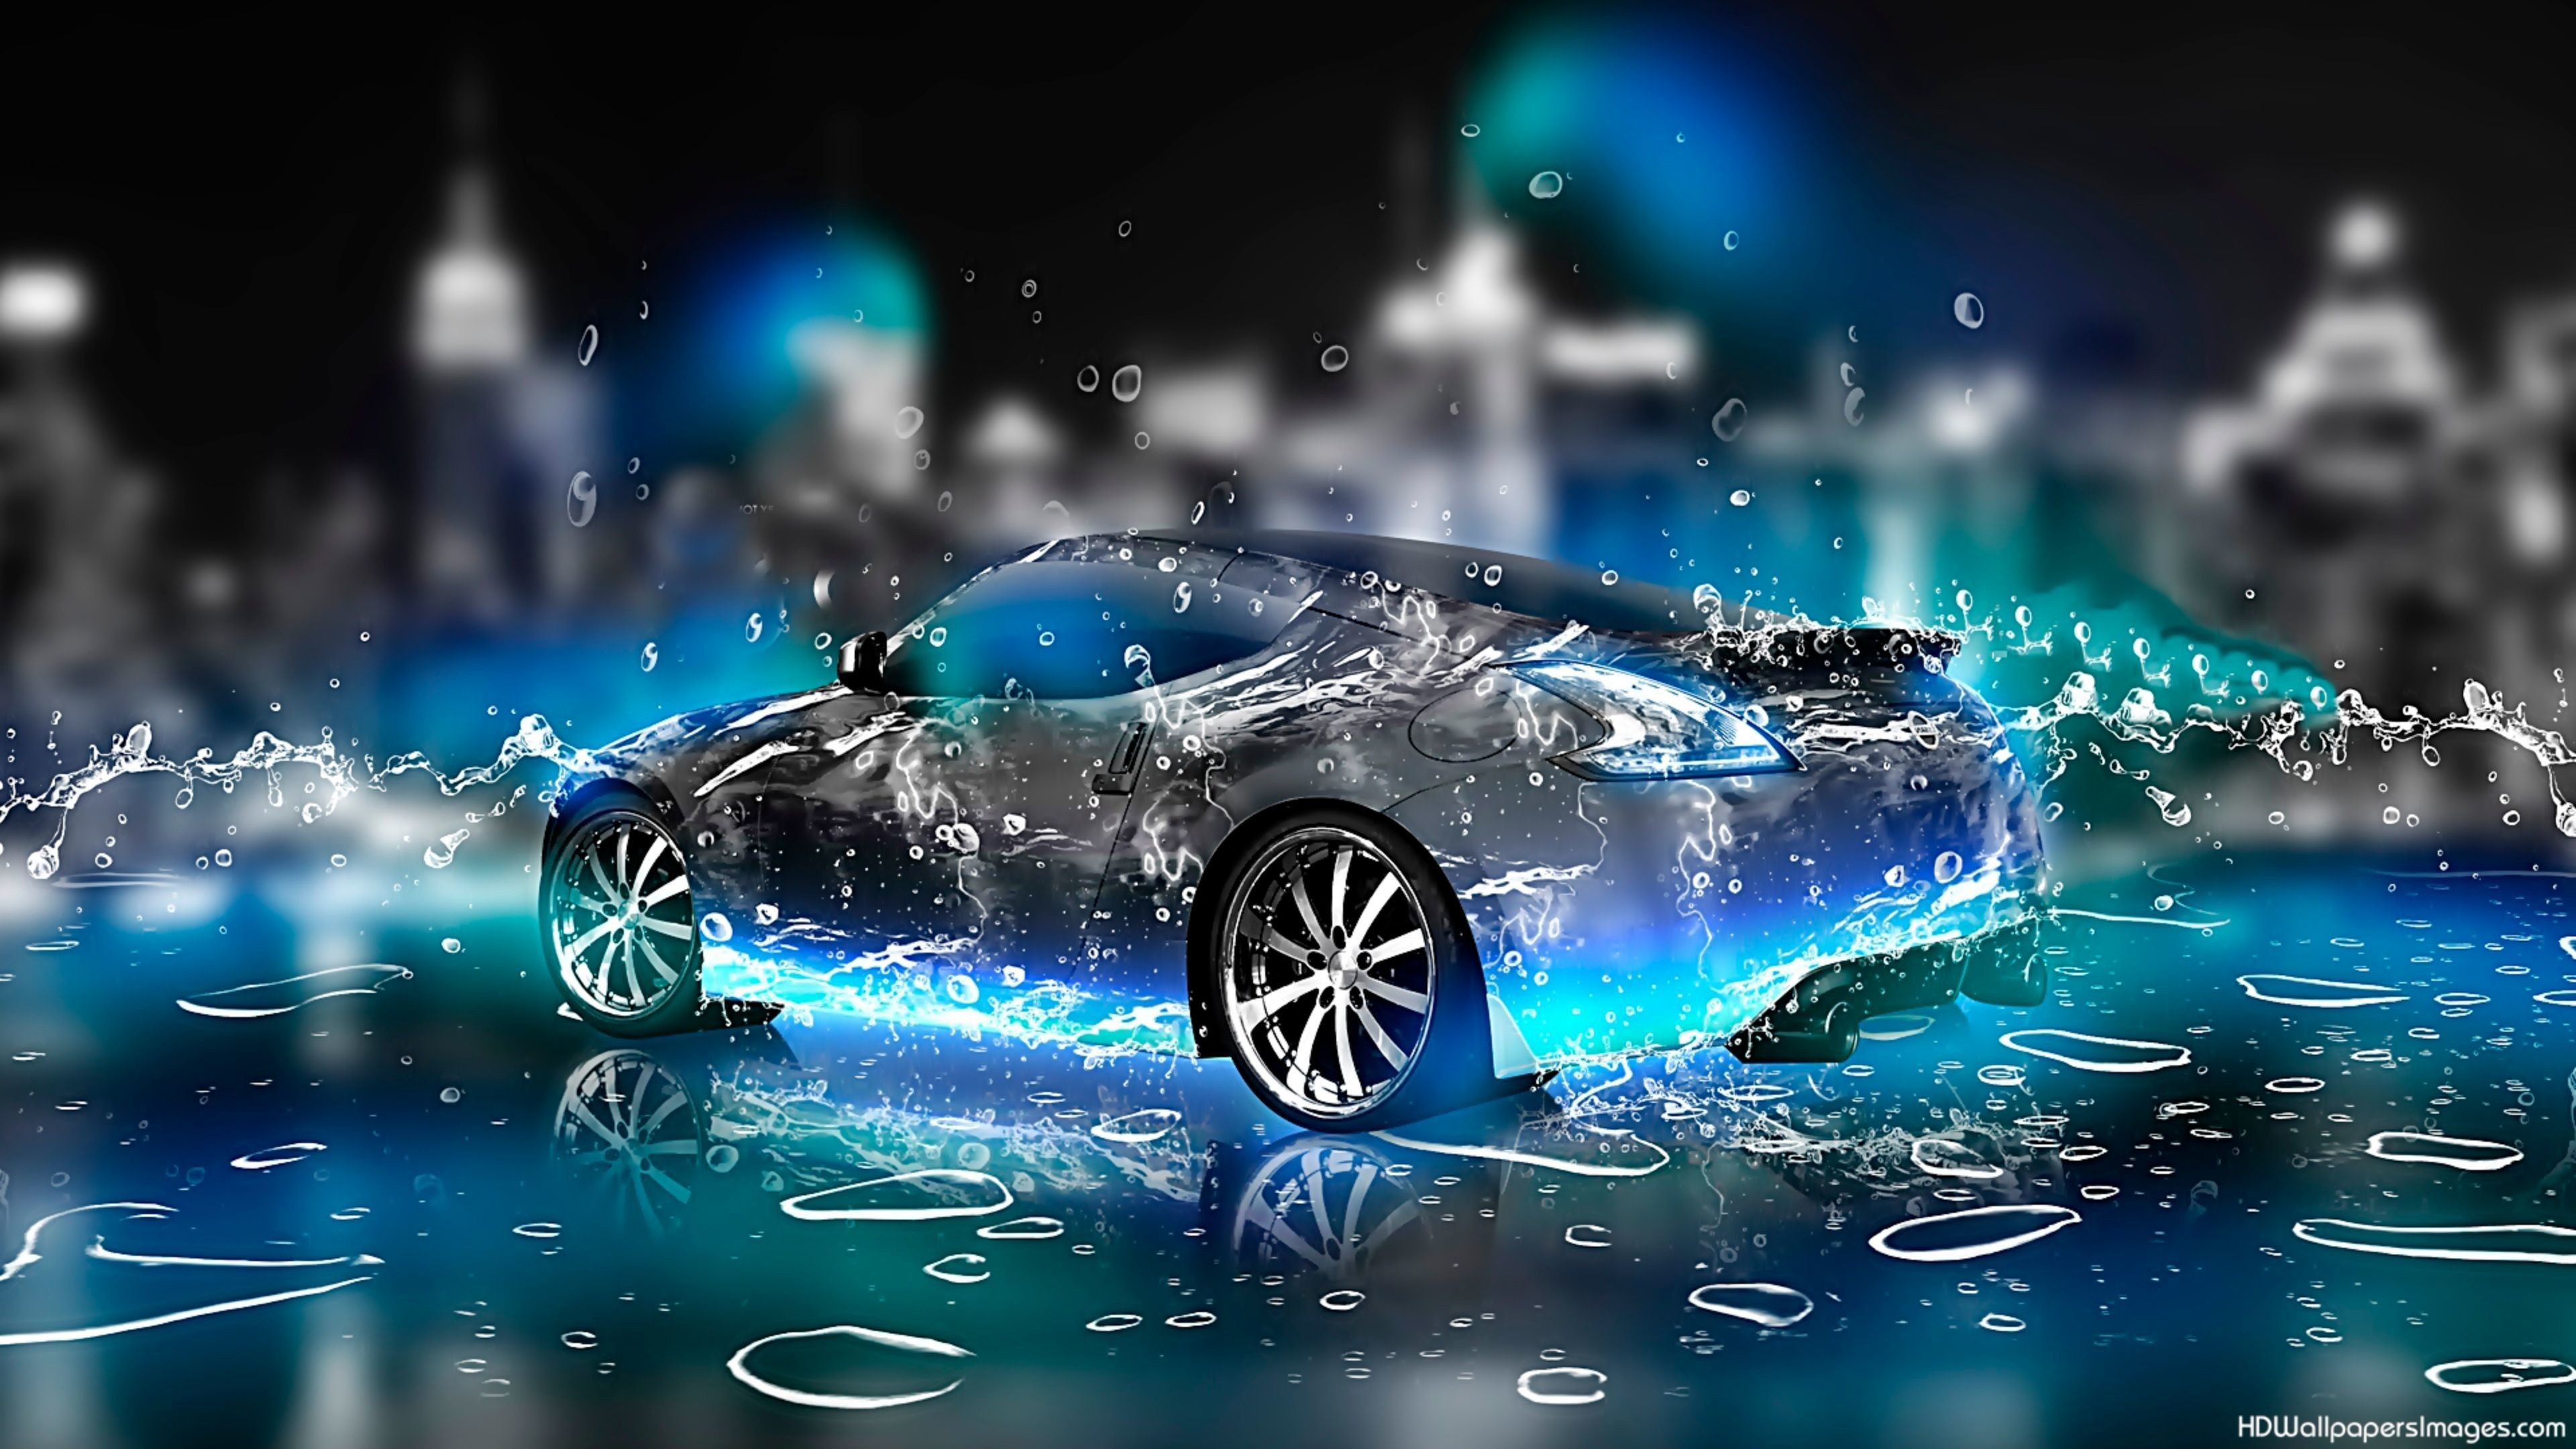 Categories 3d abstract animals anime art cars city dark fantasy flowers food games. Mind Blowing 3d Ultra Hd Car 4k Hd Wallpapers Hd Wallpapers Id 31320